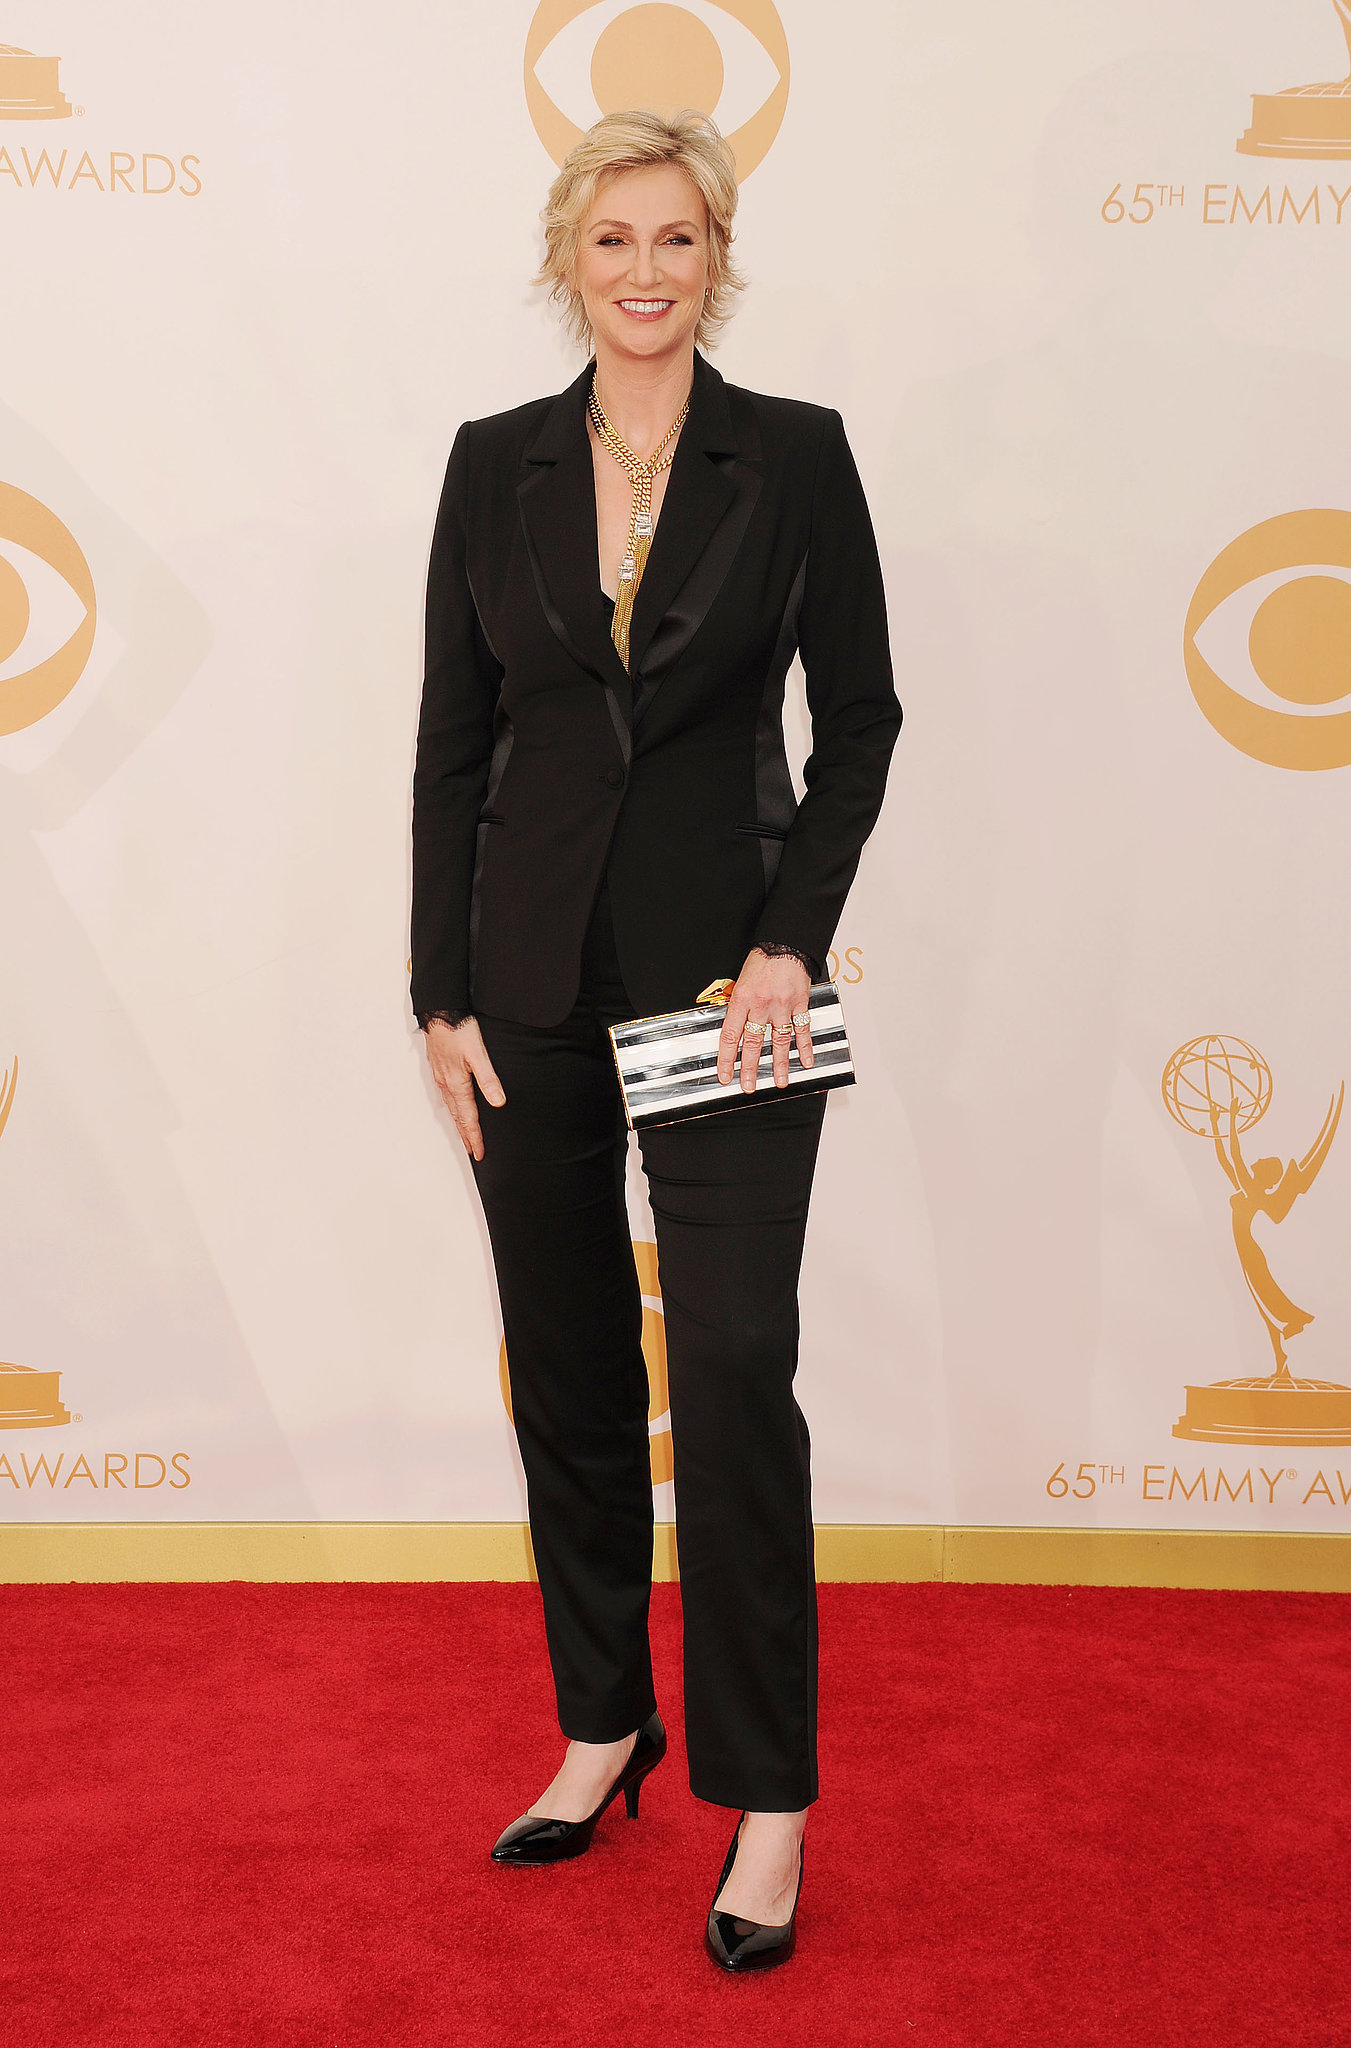 Jane Lynch completed a sharp suit with a pair of black kitten heels, bold gold jewels, and a striped clutch.